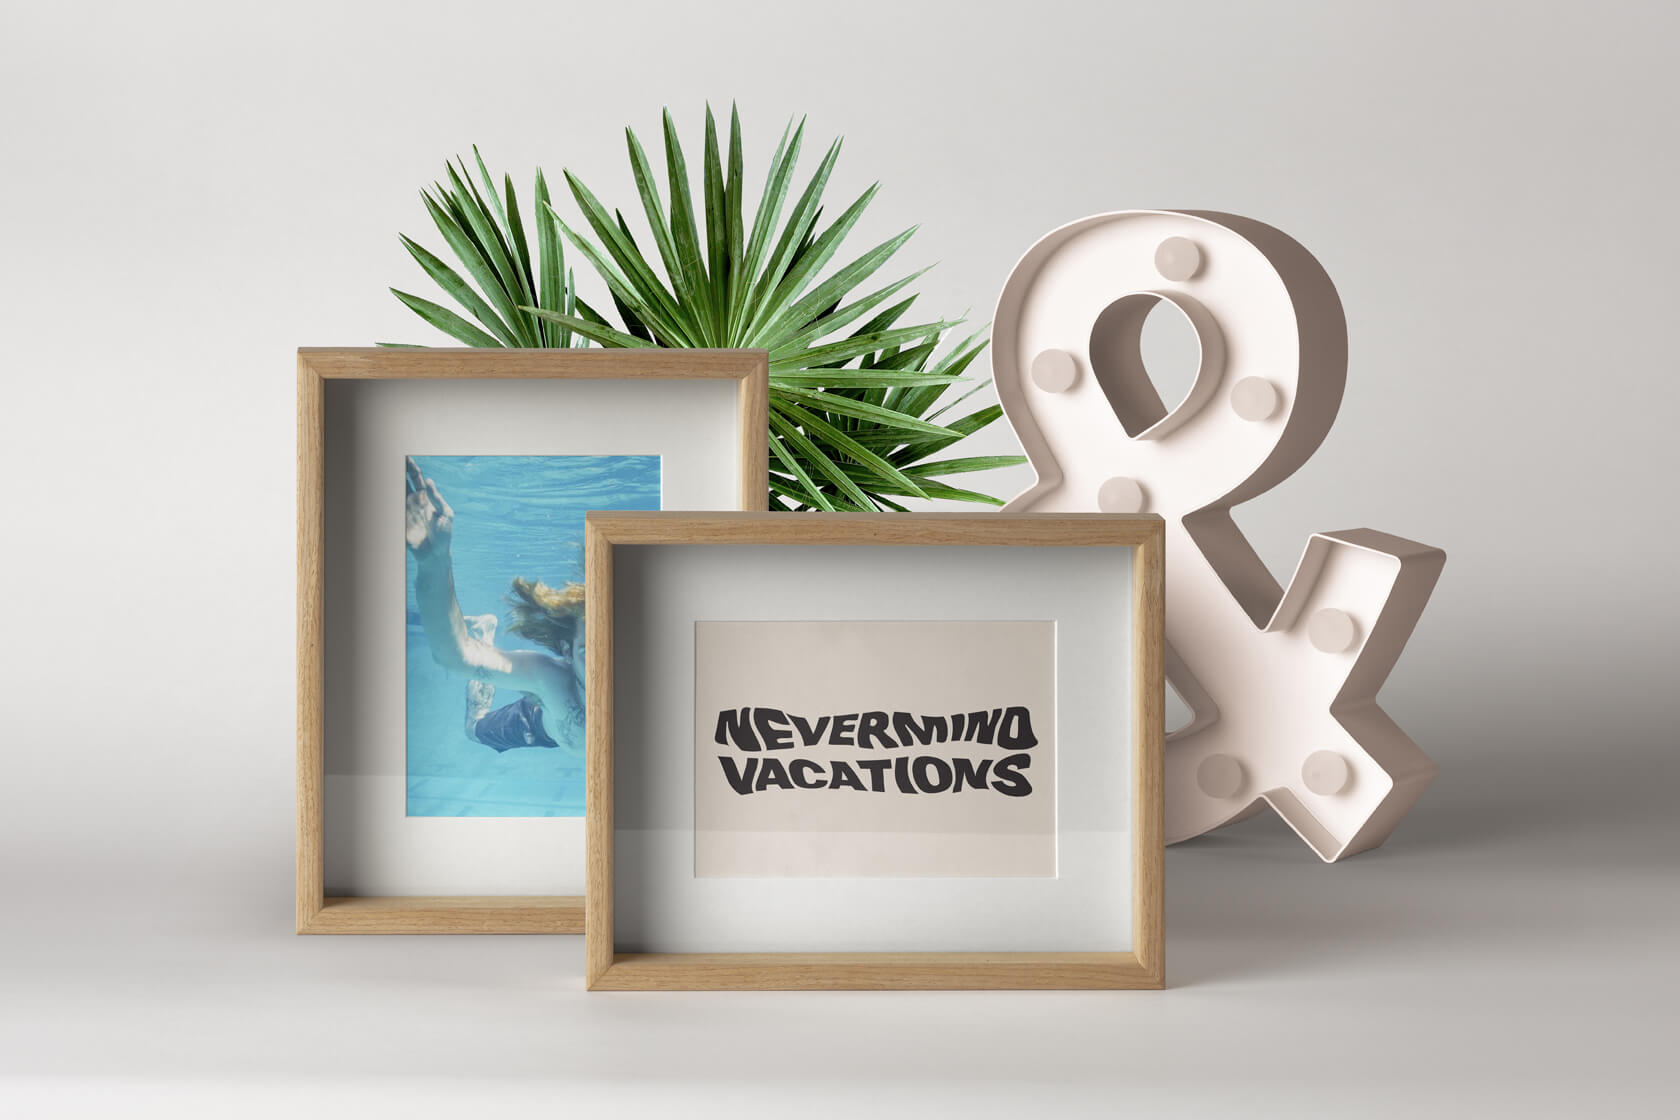 Nevermind Vacations frame logo